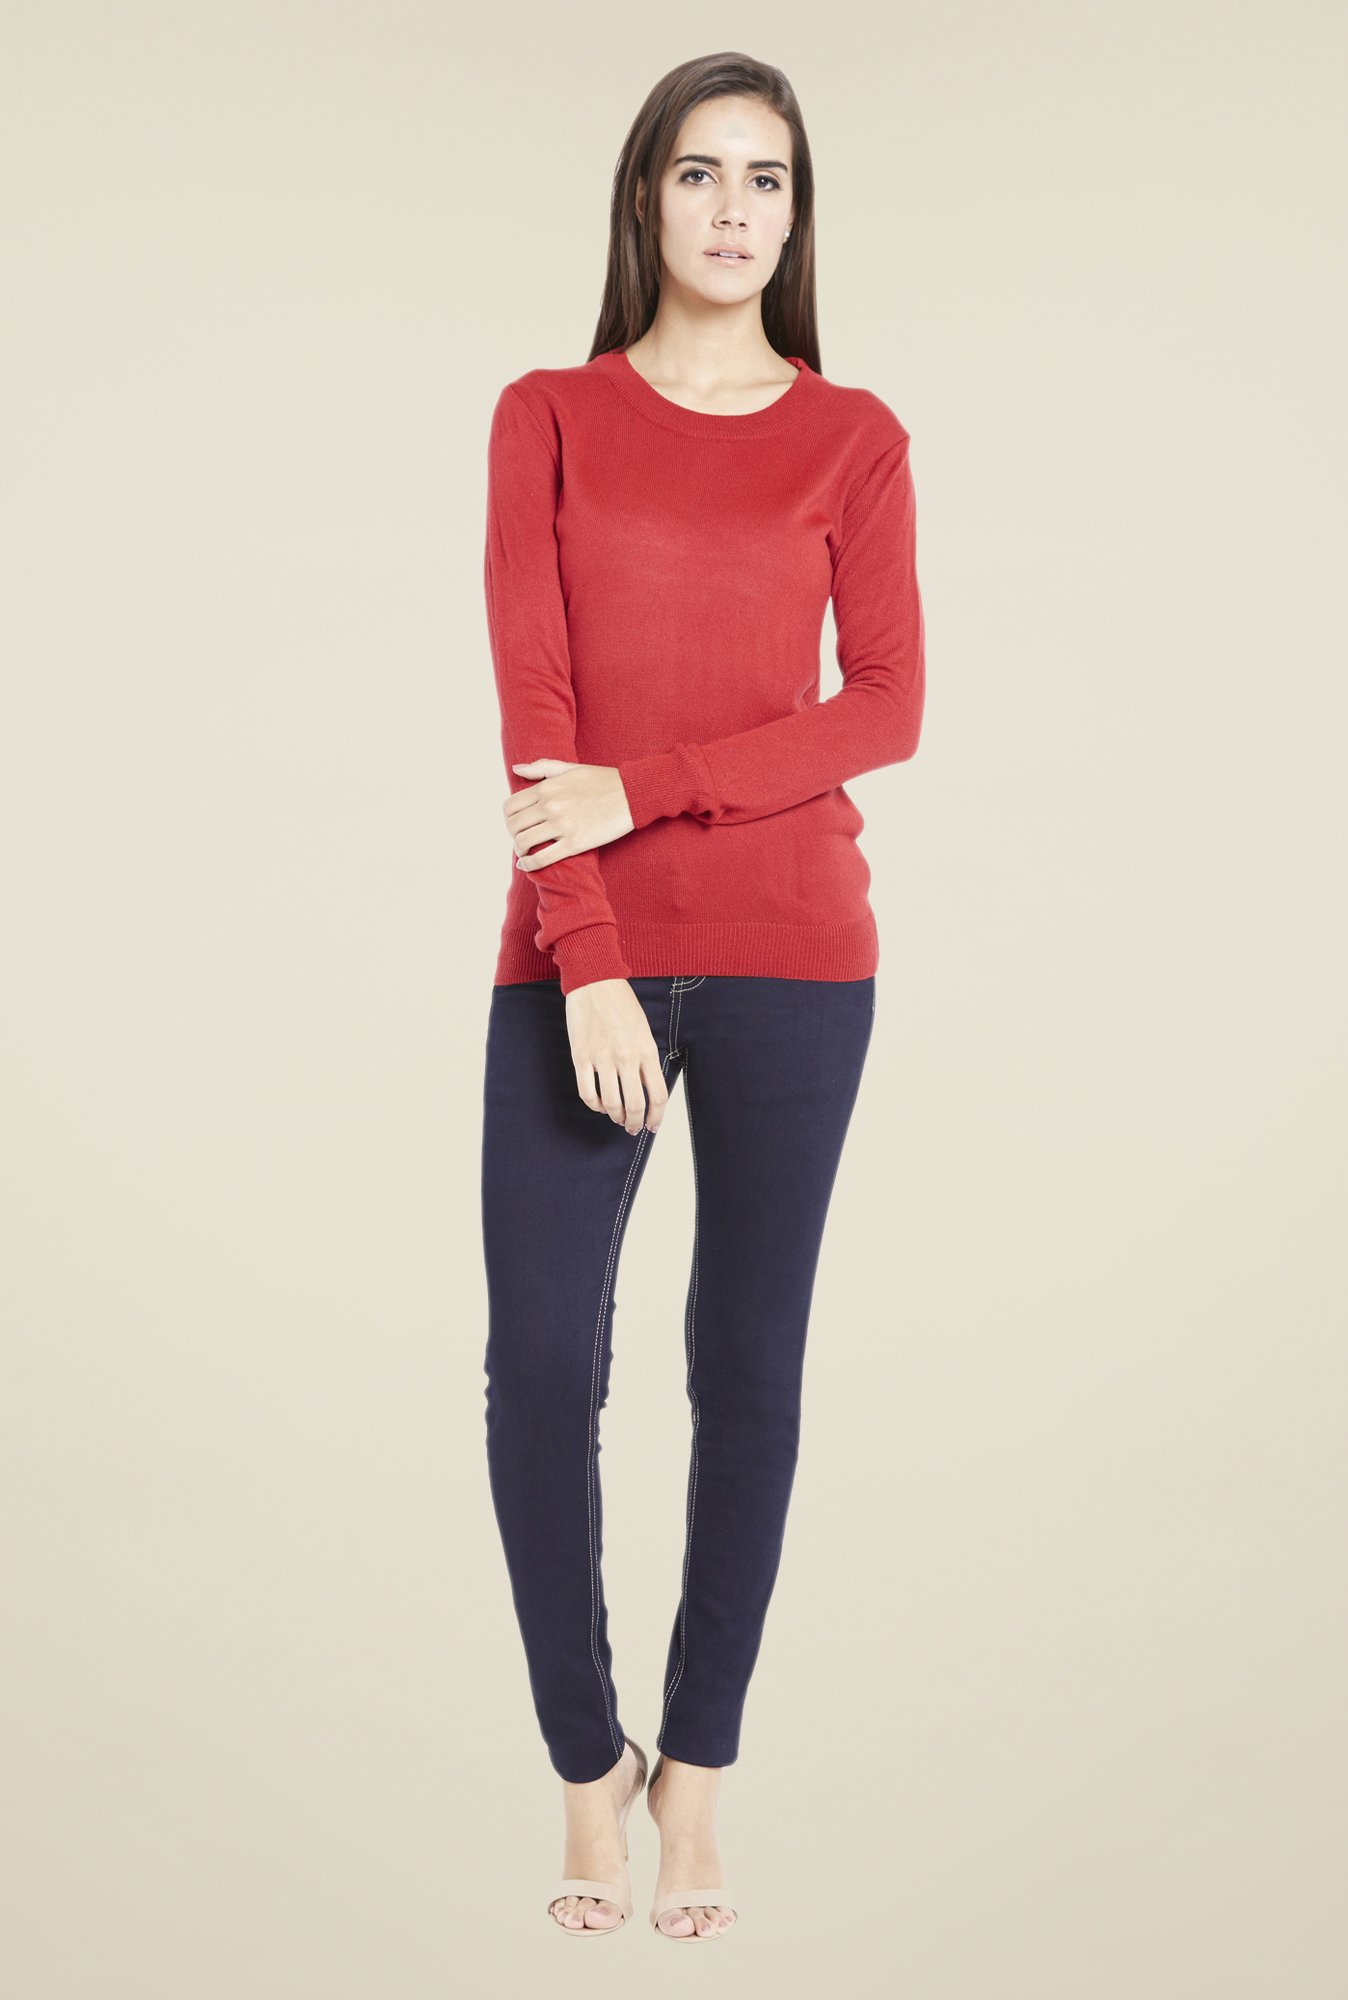 Globus Stunning Red Solid Pullover